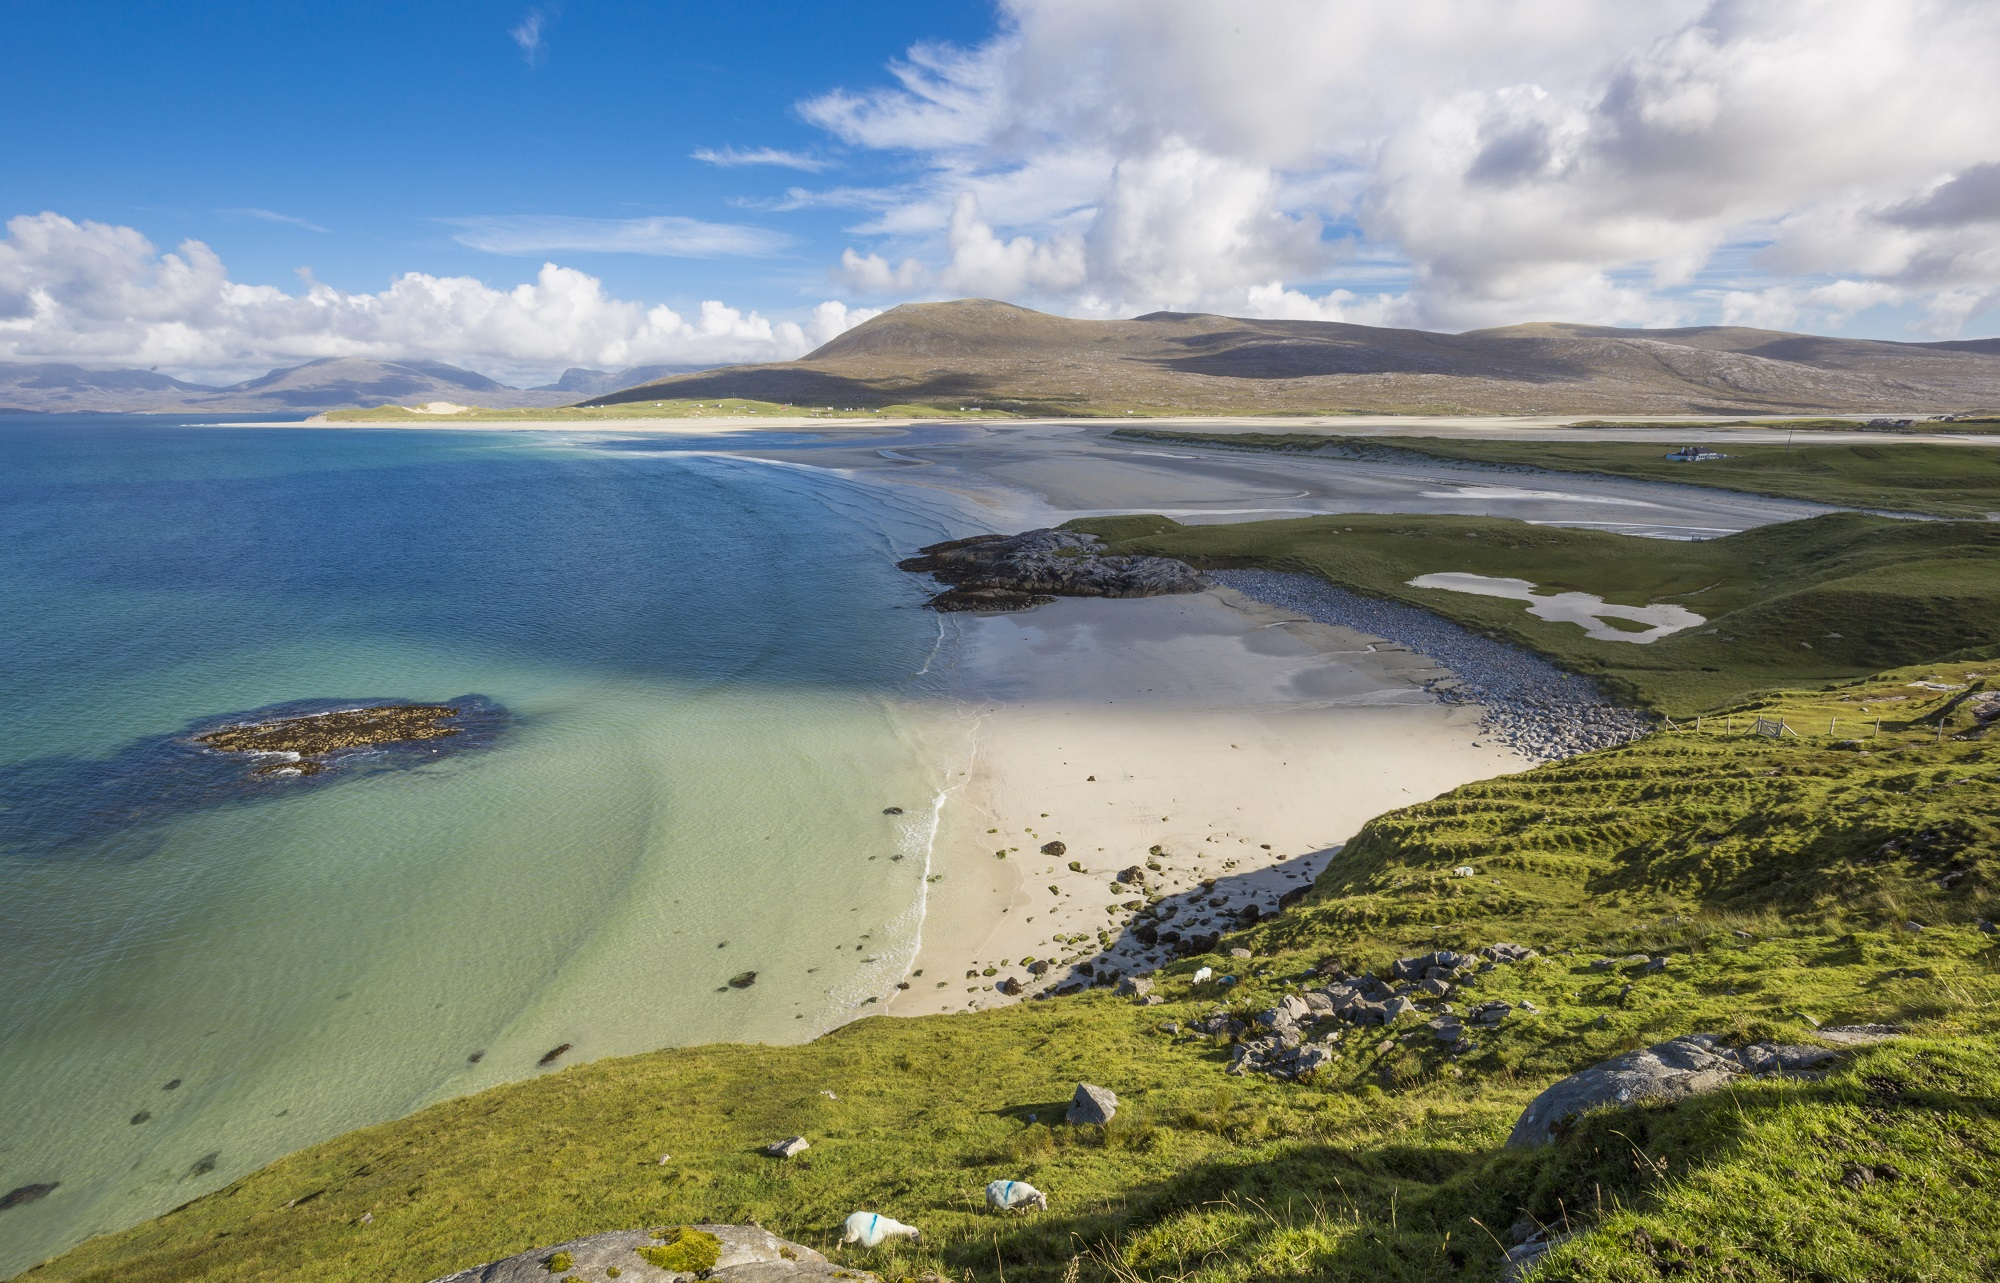 Luskentyre sands on the Isle of Harris, Outer Hebrides, Scotland